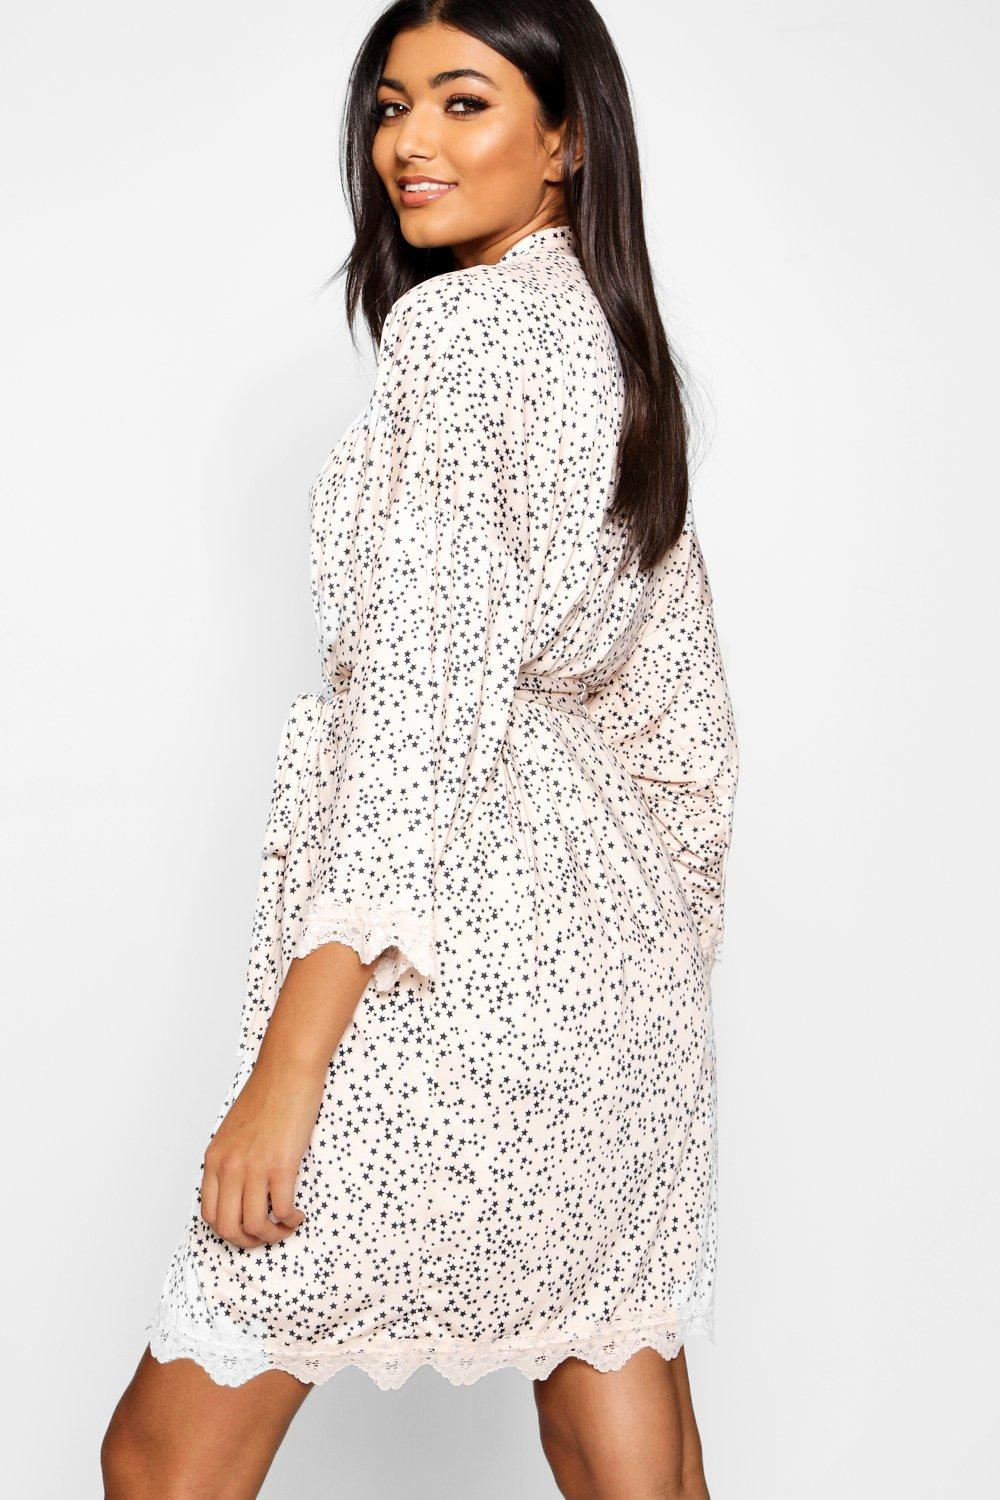 Lace blush Print Star amp; Robe 86FAZvq